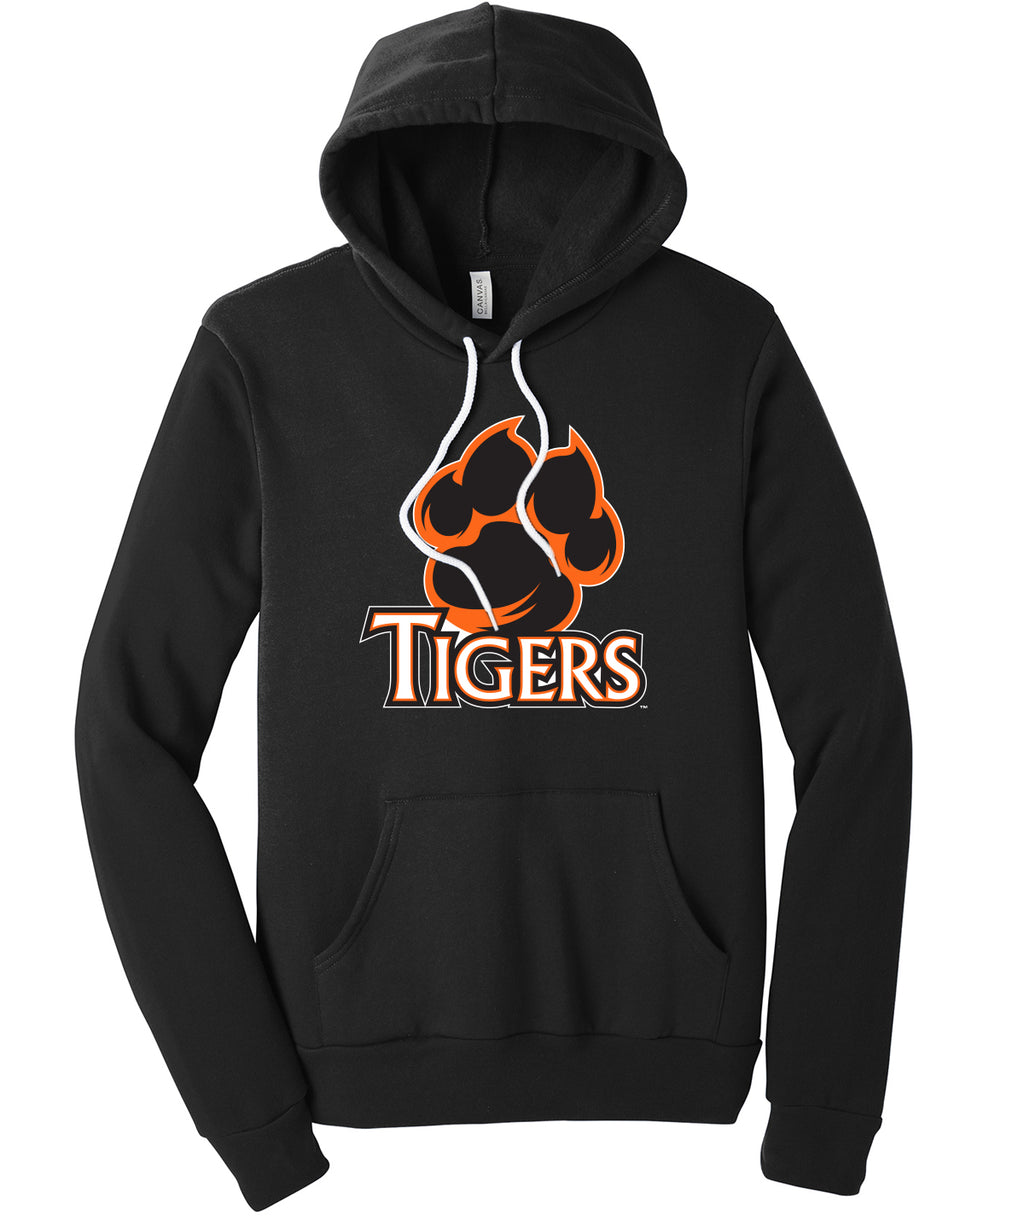 Tigers Fleece Pullover Sweatshirt